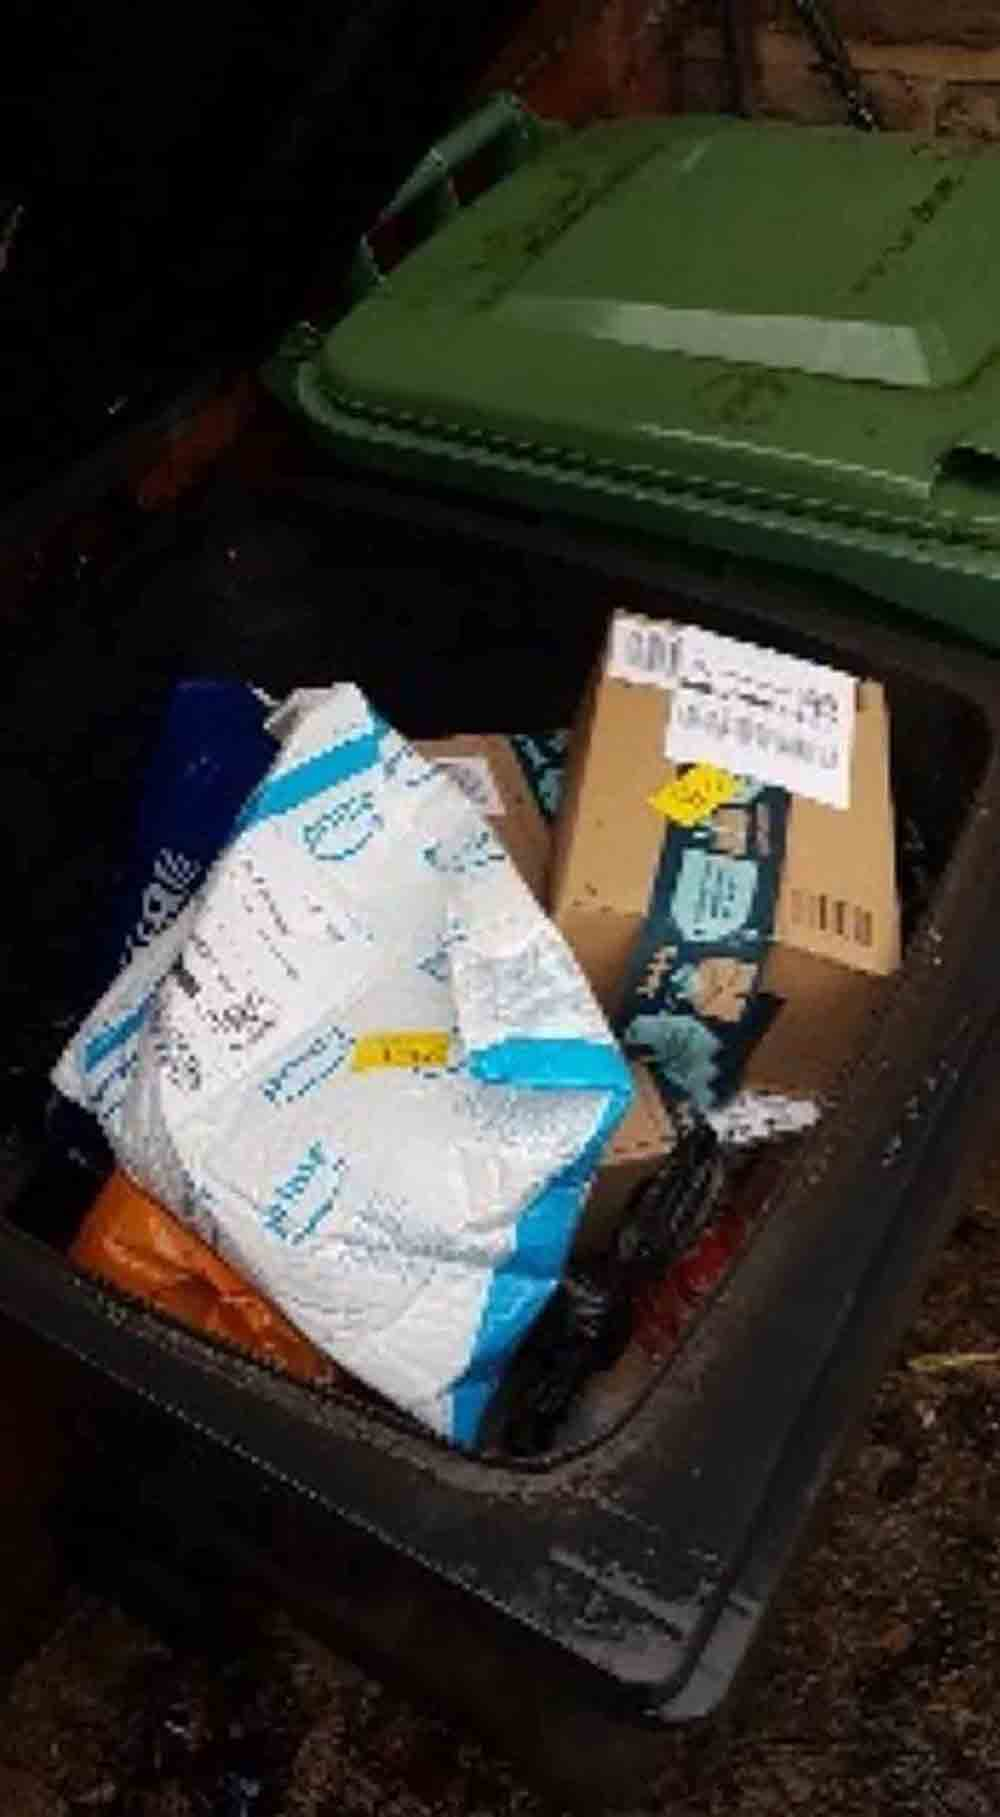 Amazon delivery driver leaves christmas presents in bin - which is then emptied - Consumer News UK